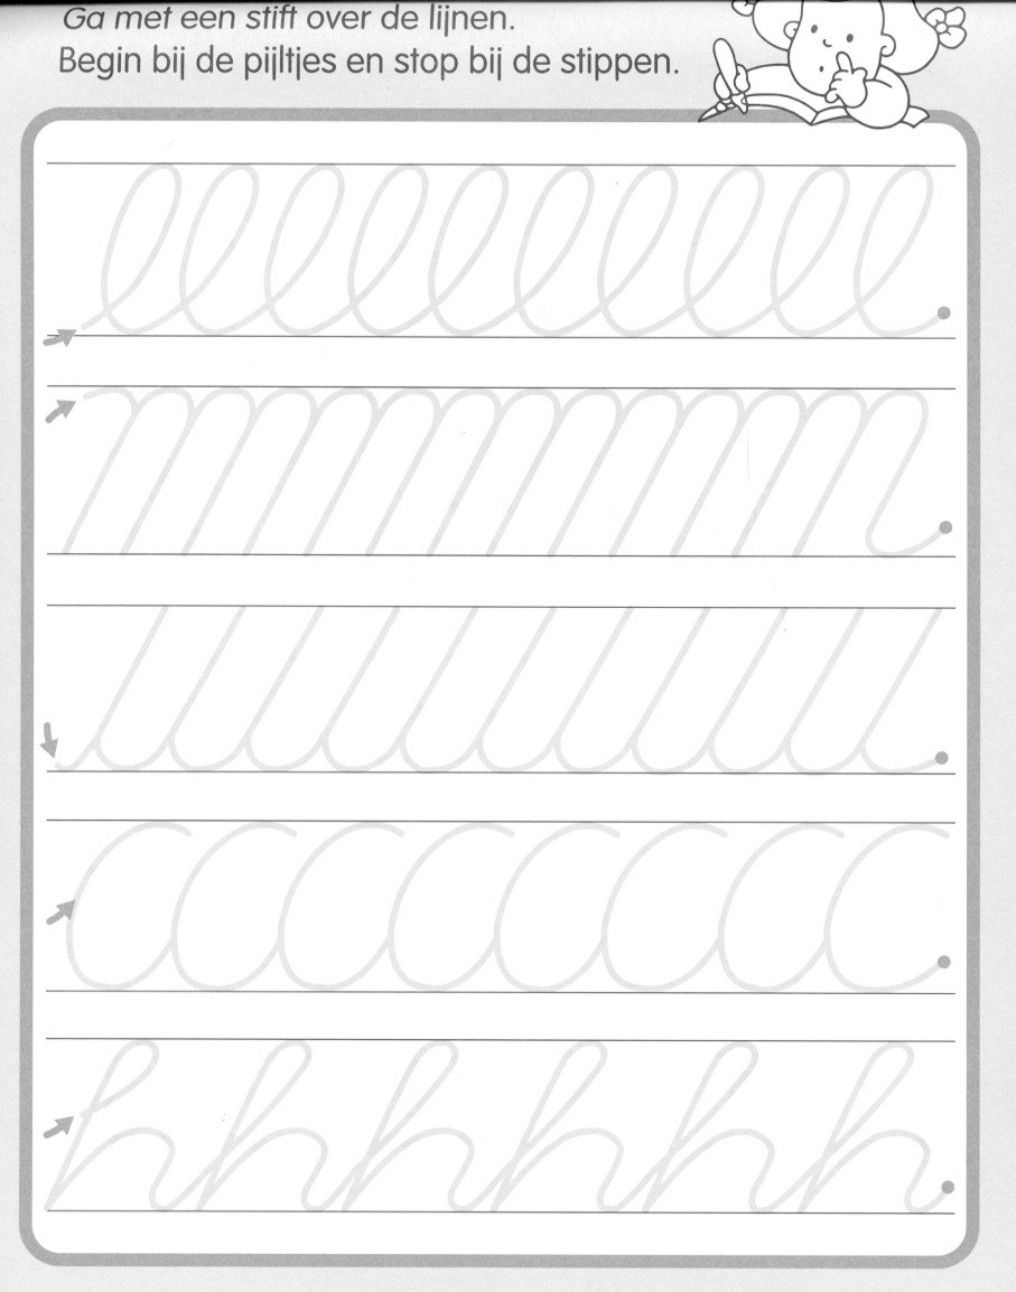 Pin by A dlaczego? on hanwriting | Pinterest | Worksheets ...